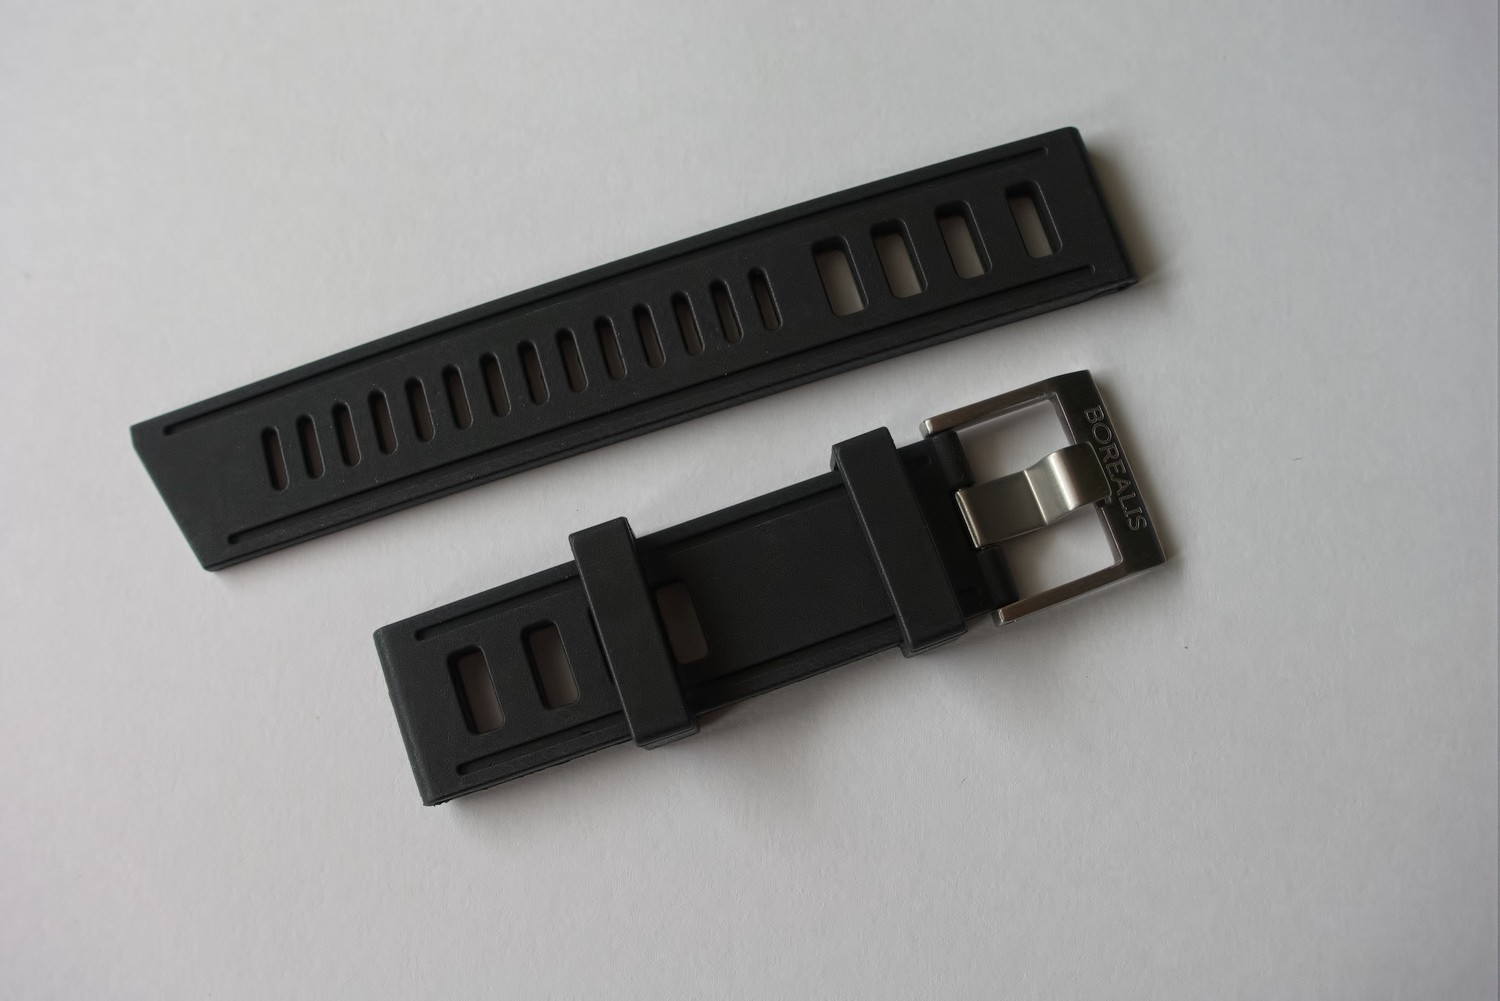 Borealis Vulcanized Rubber Strap 22mm Black - Best Offer in Market for Diver Watches